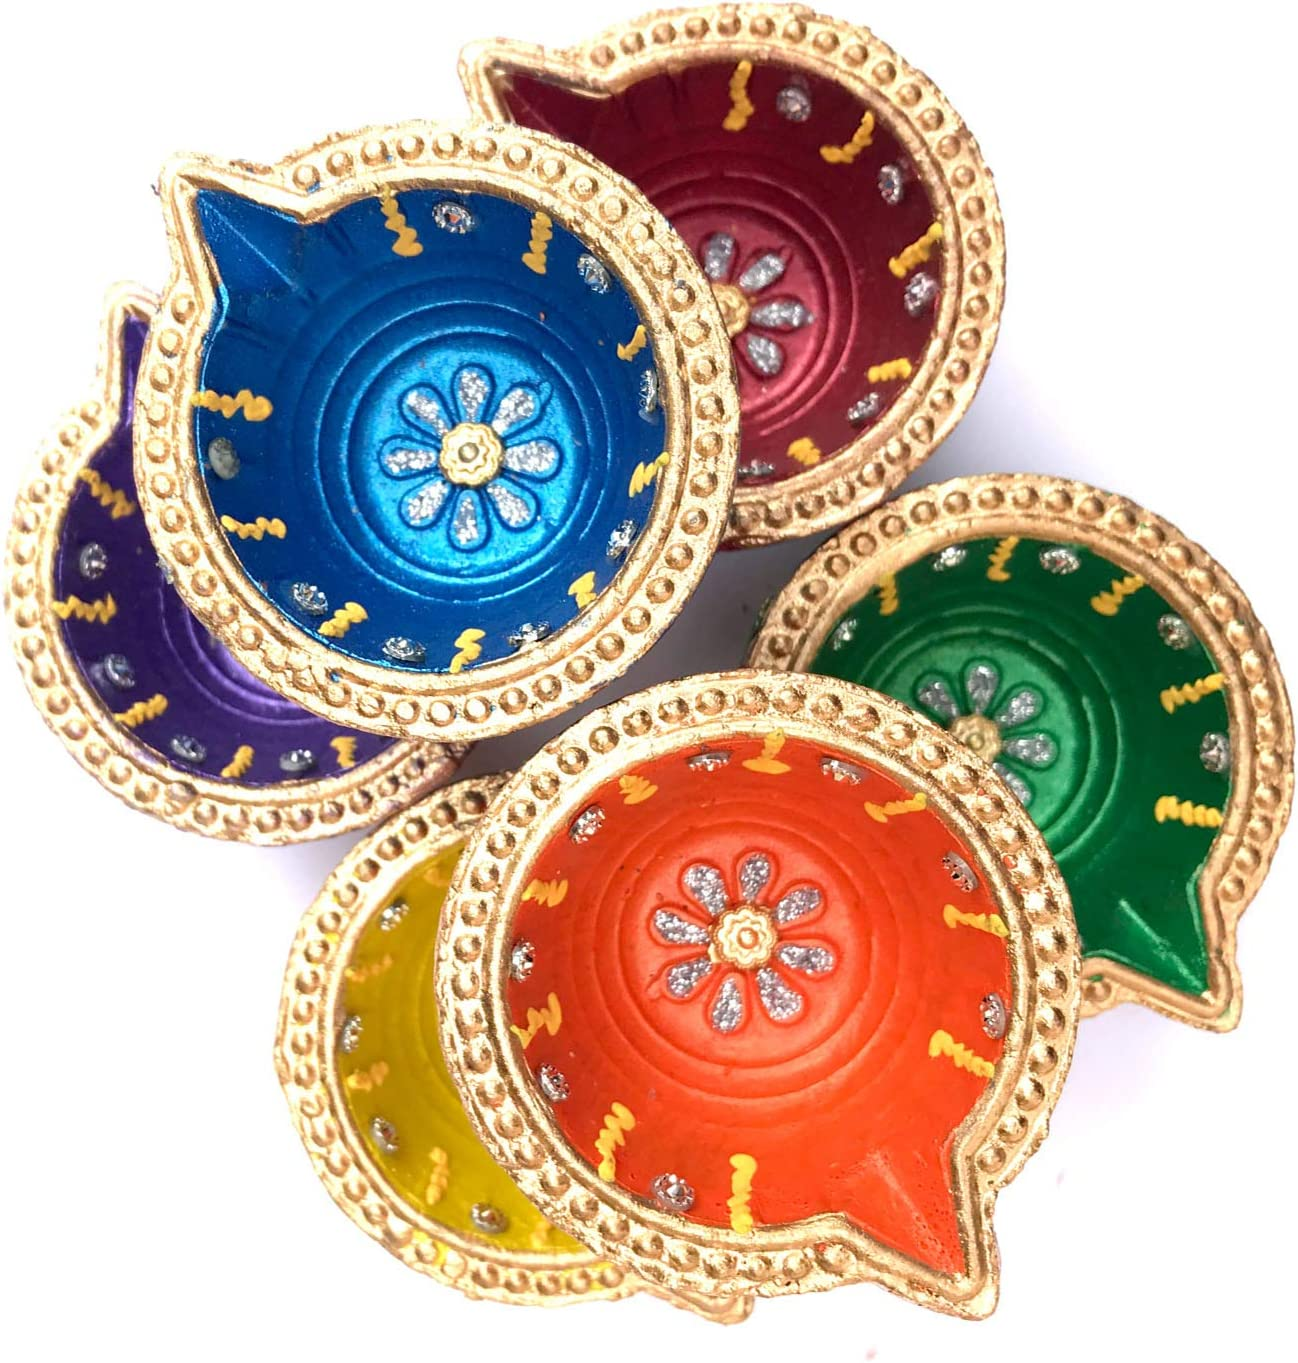 MultiColor YADNESH Set Of Six Deepawali Special Clay Diya home decor and festivities Carved beautifully out of clay for this festival Diyas are an essential part of Diwali decorative Earthen Diya